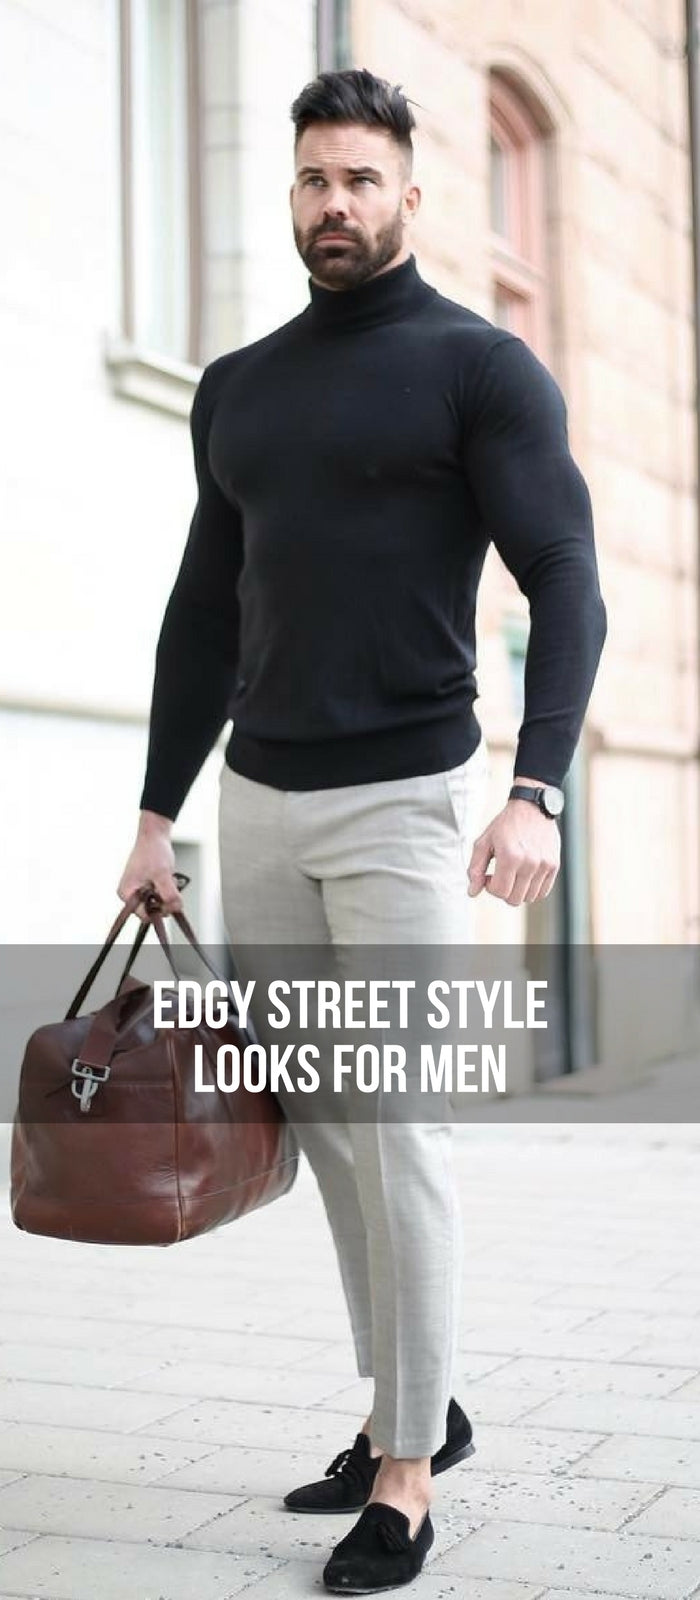 16 edgy street style looks to help you dress sharp